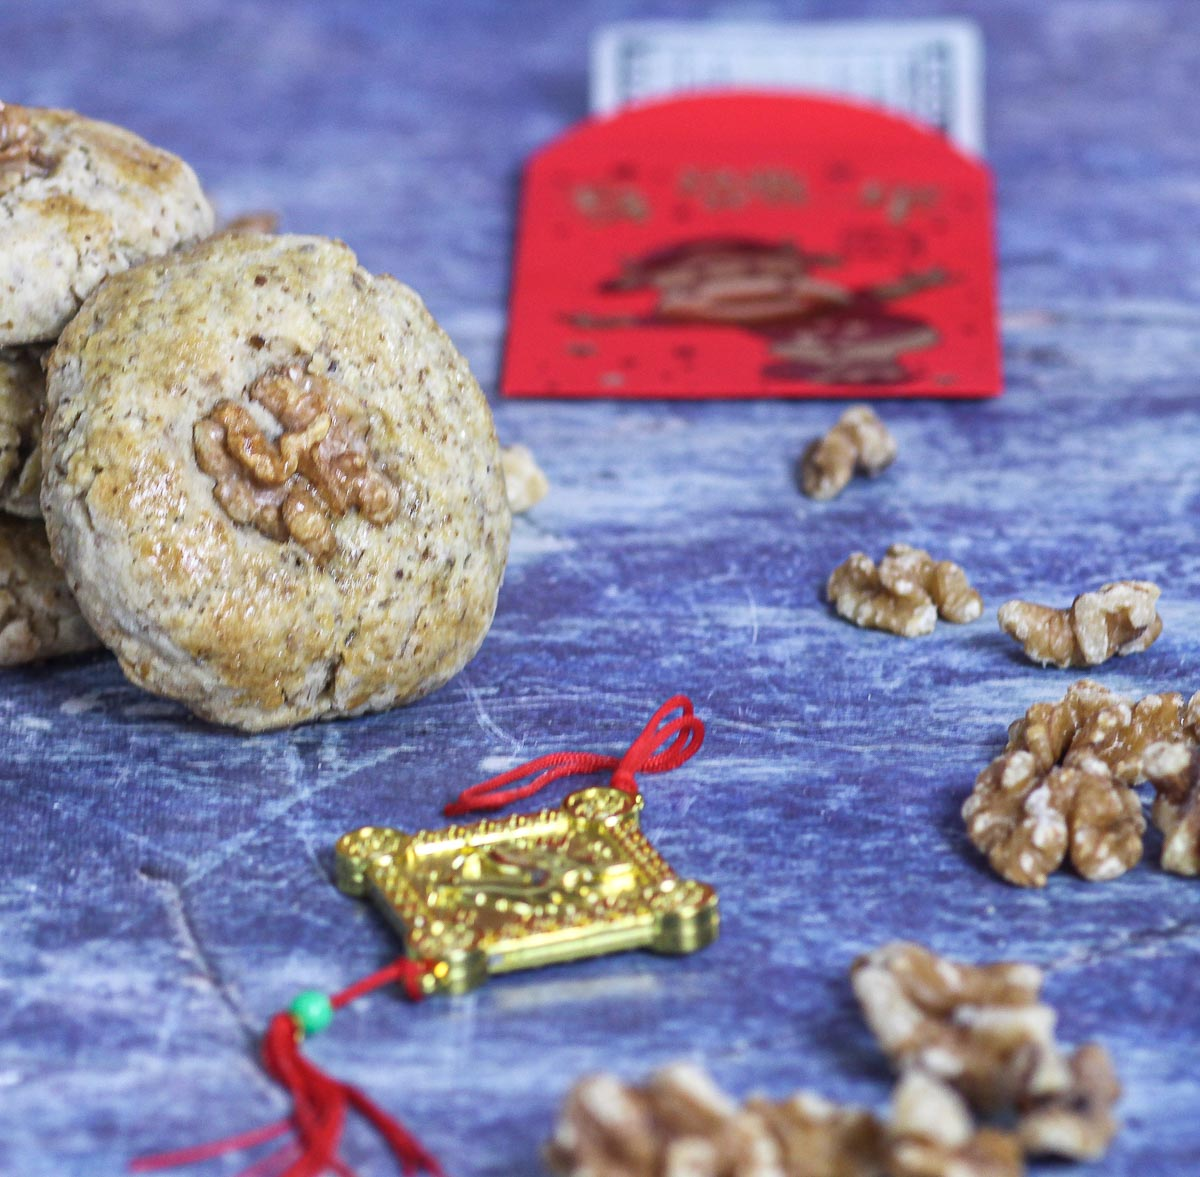 Chinese Walnut Cookies with Chinese New Year decorations